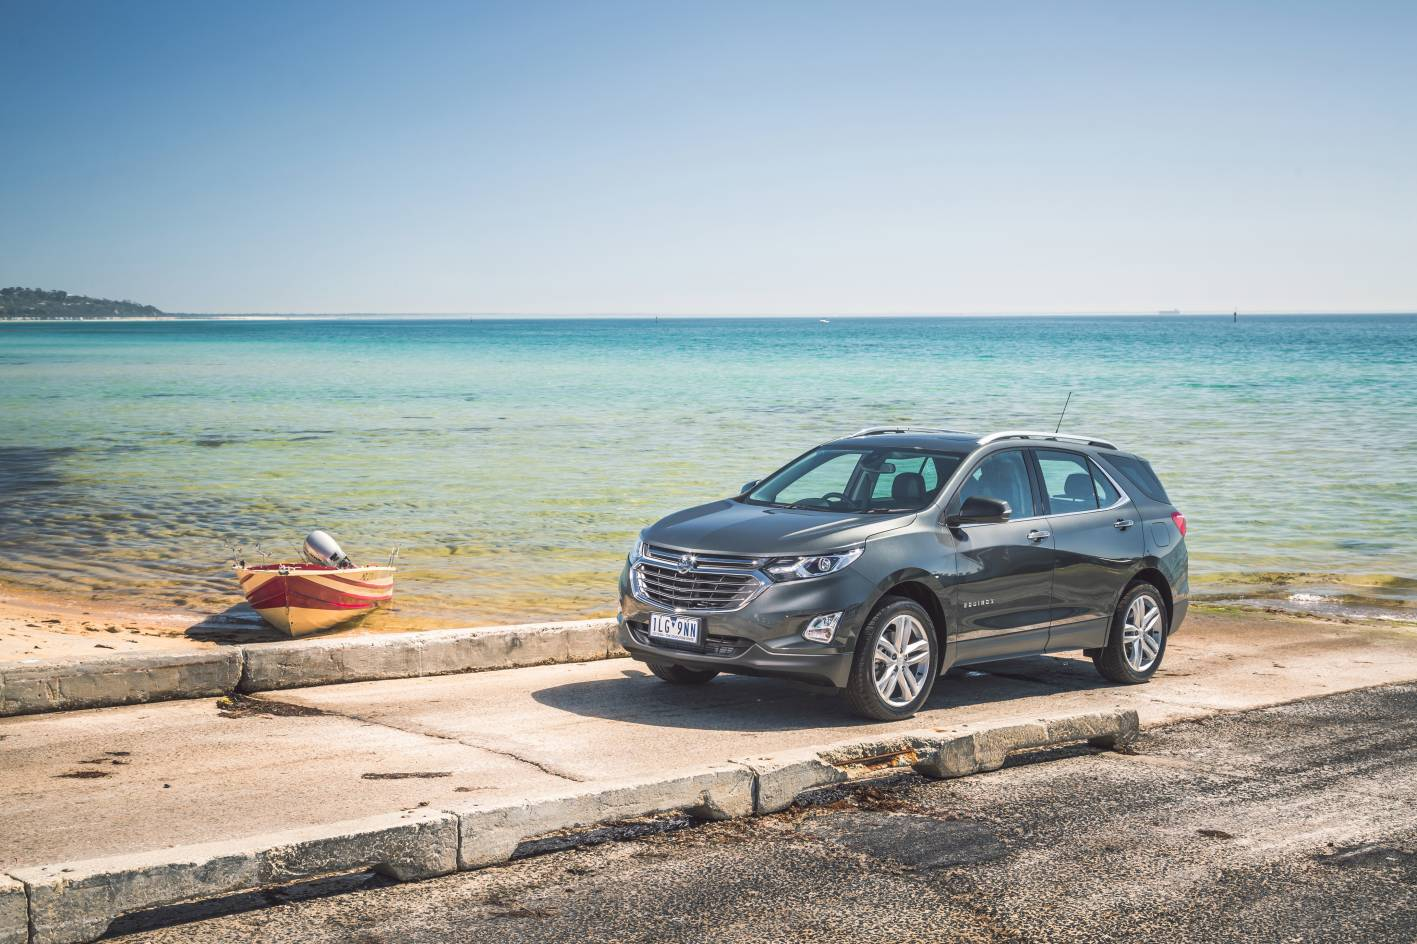 Frankly, you're better off in a Tucson, Sportage or CX-5 (or you could wait for the Forester update...)